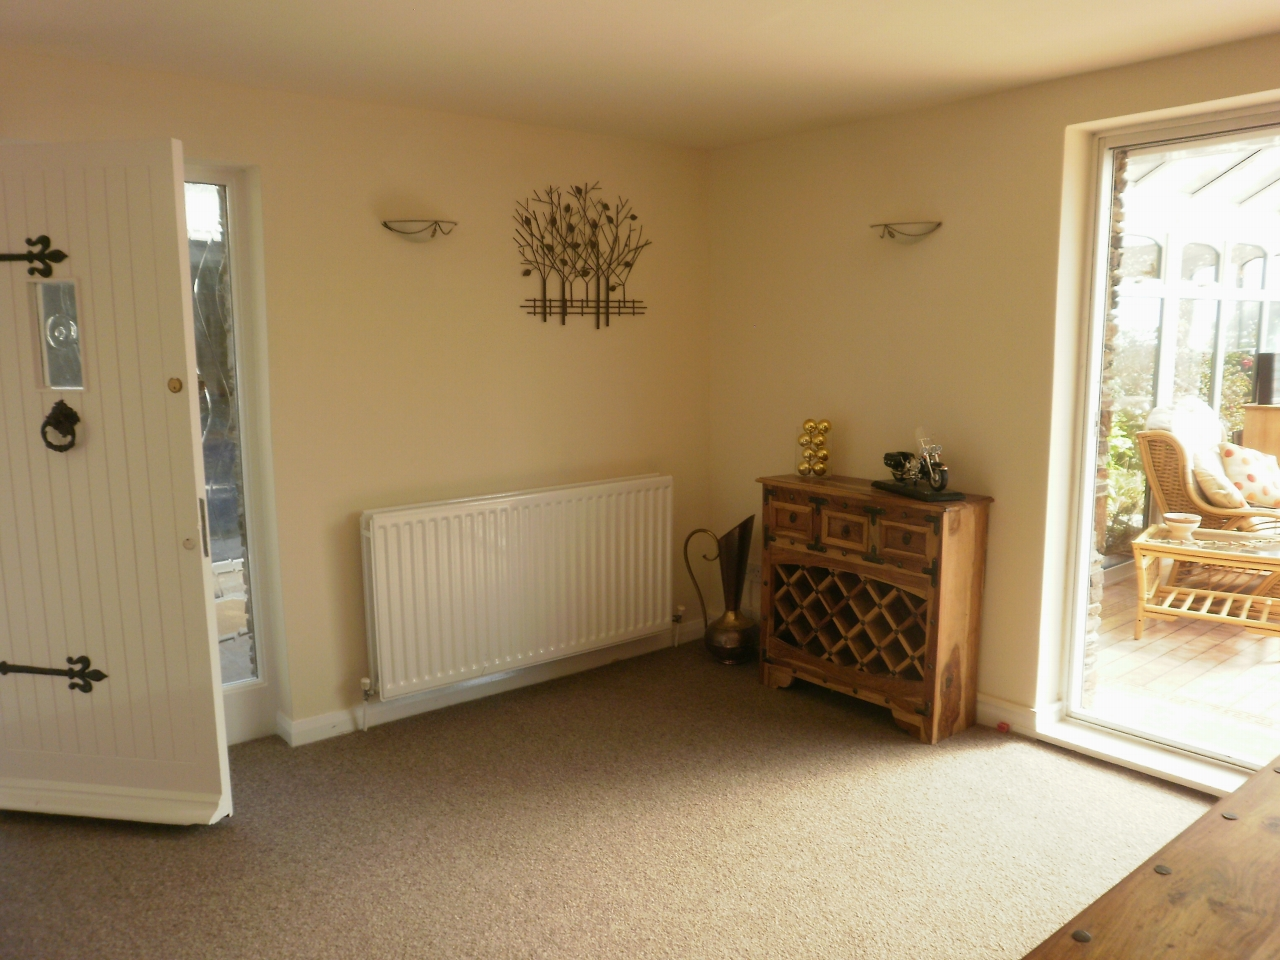 5 bedroom detached house SSTC in Colby - Photograph 20